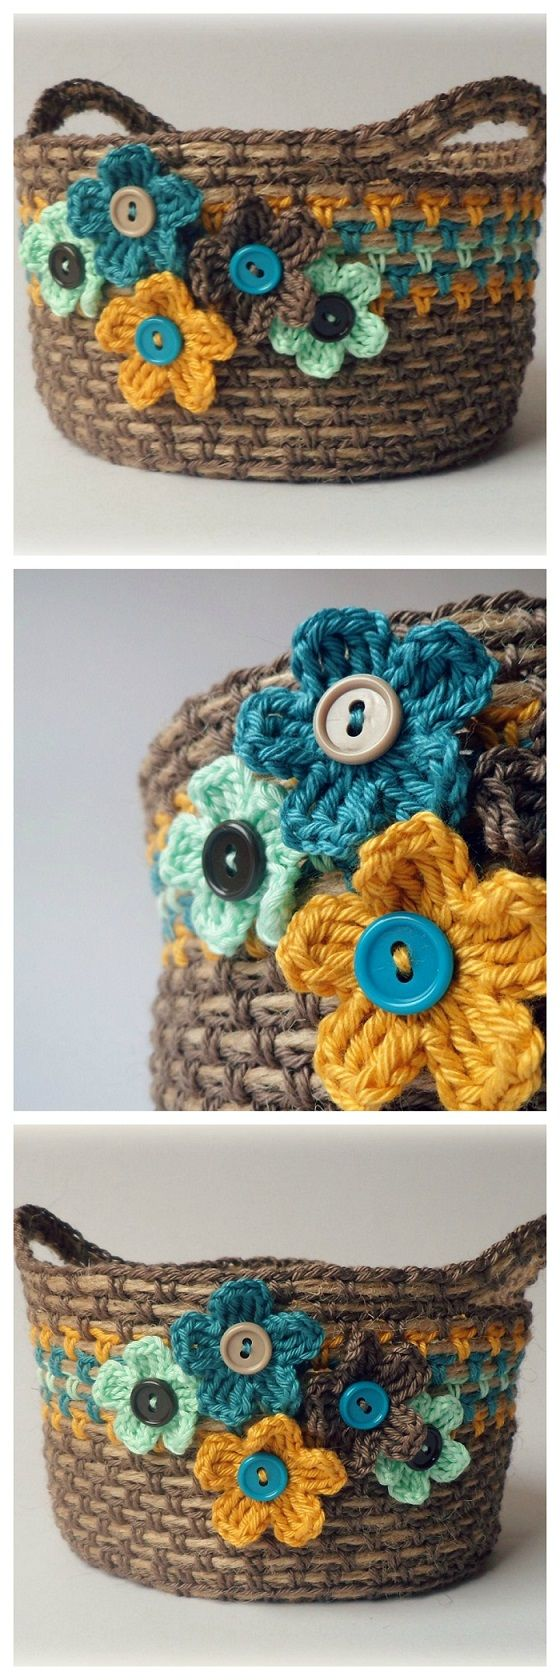 crochet basket with rope, flowers and buttons